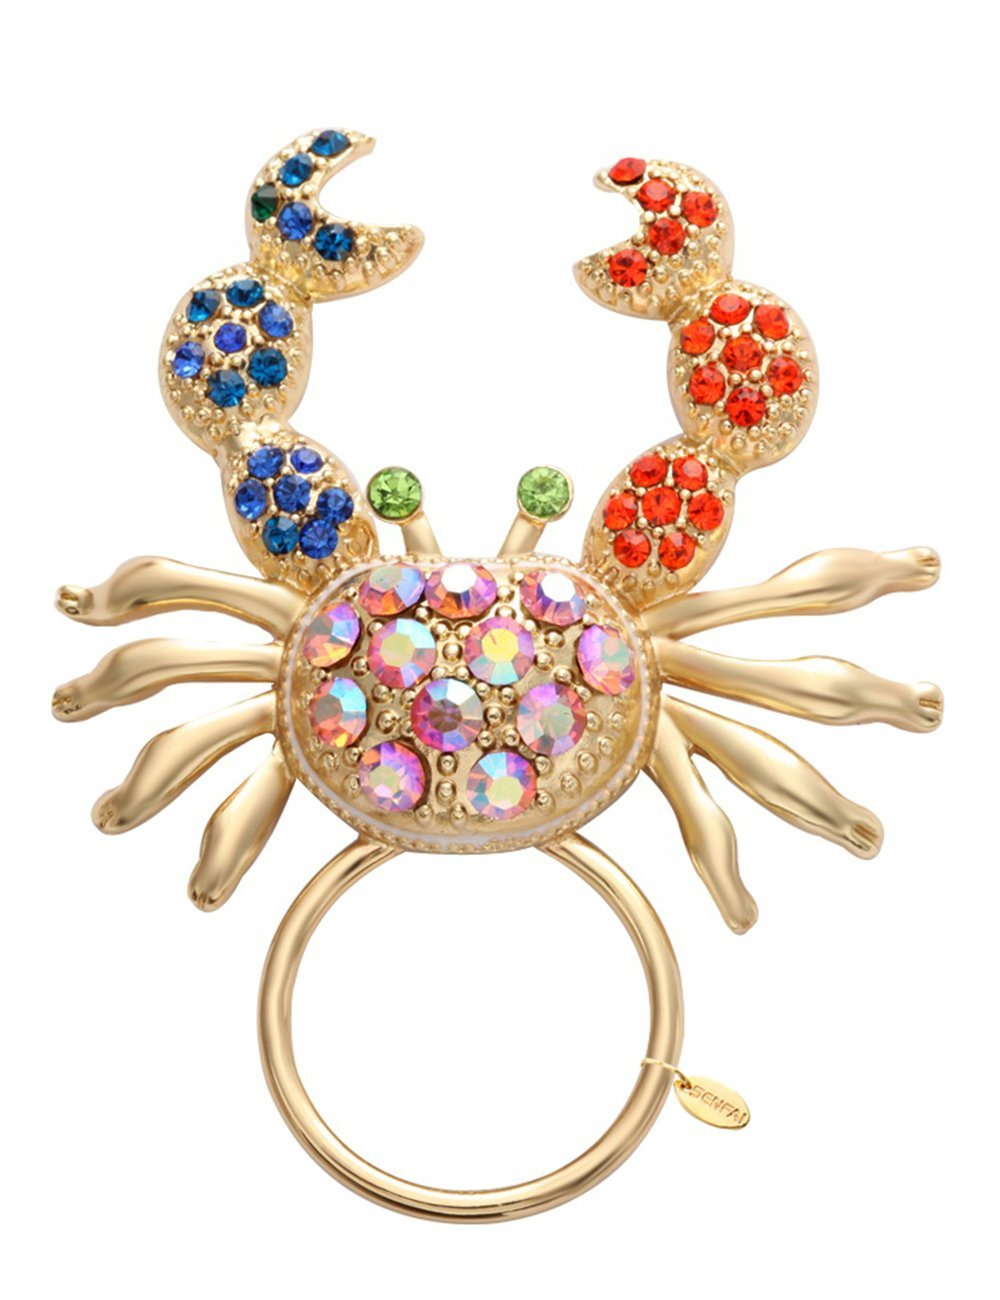 SENFAI Big Crab with Crystal Megnet Eyeglass Holder for Womens' Jewelry Brooch